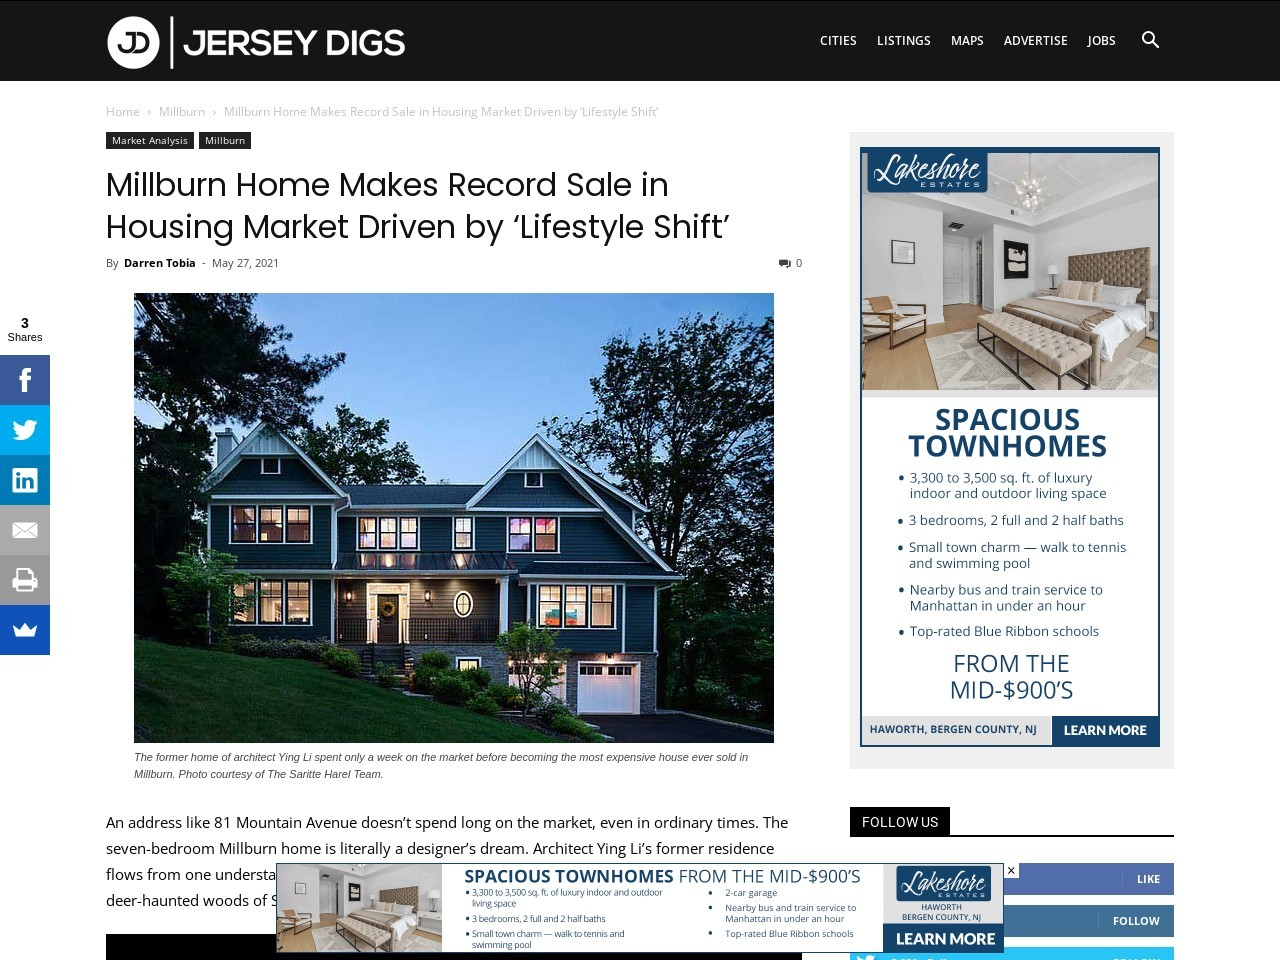 Millburn Home Makes Record Sale in Housing Market Driven by 'Lifestyle Shift'